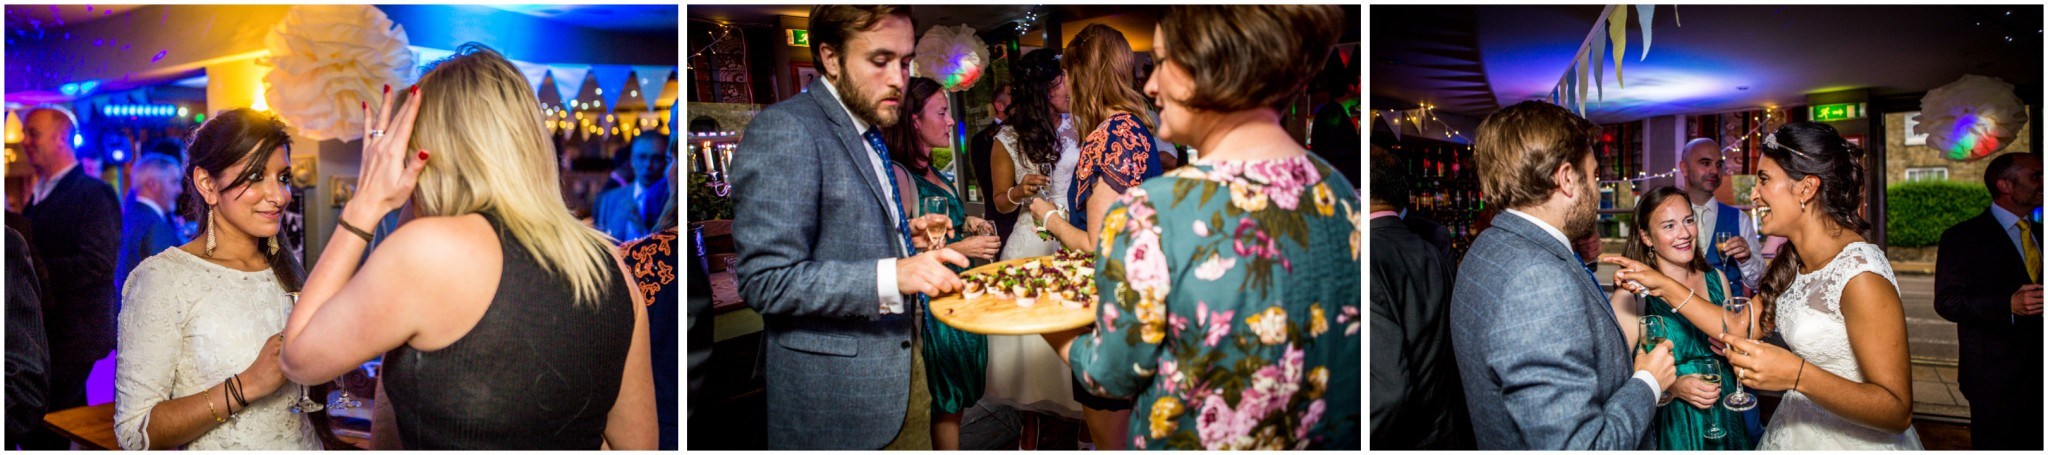 winchester-basing-room-wedding-photography-049